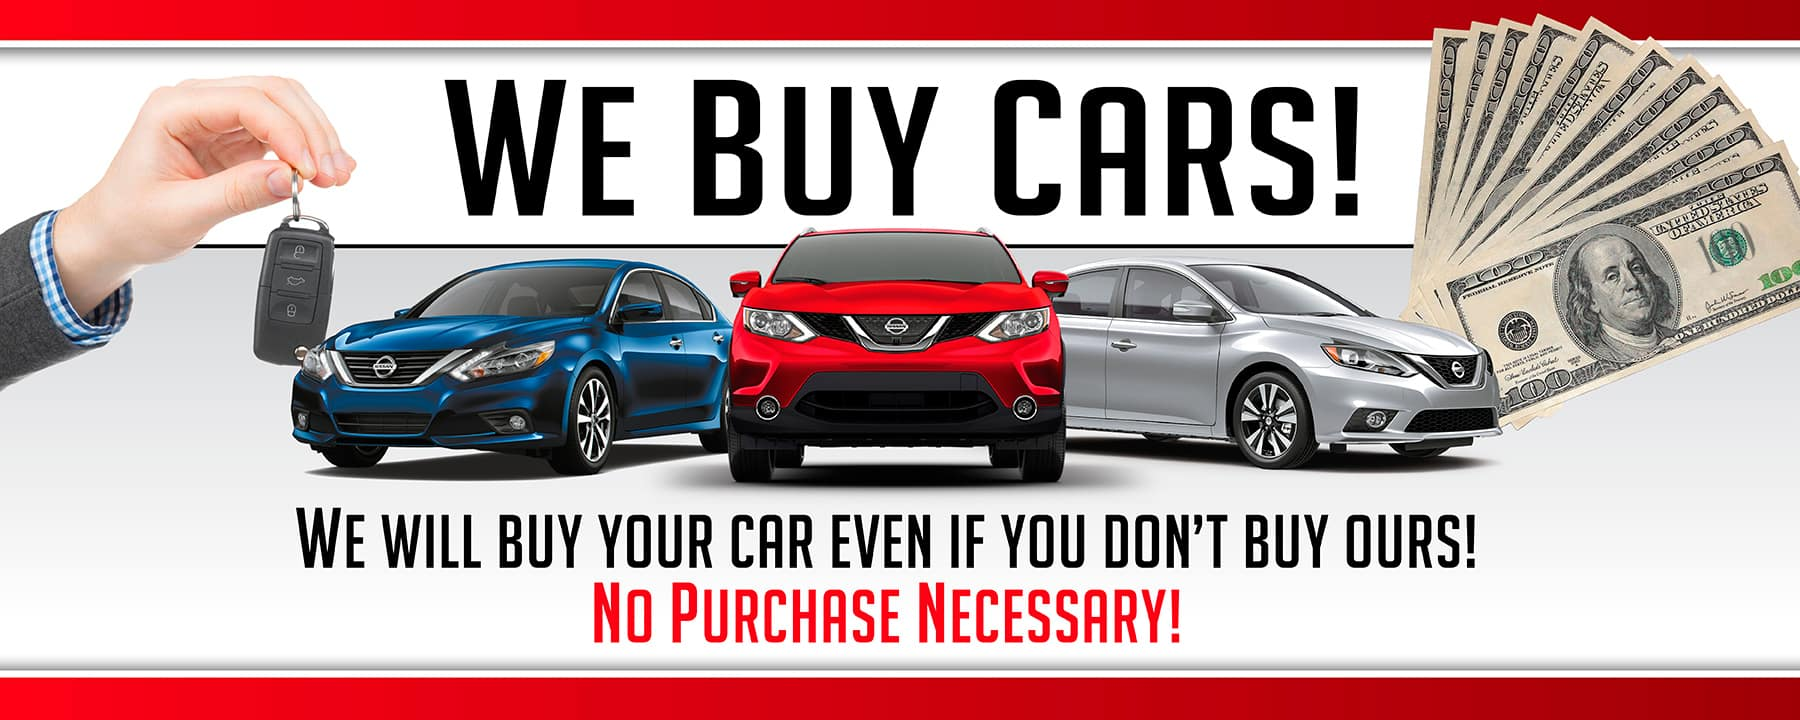 At Star Nissan, We will buy YOUR CAR, even if you don't buy from us. No Purchase Necessary!